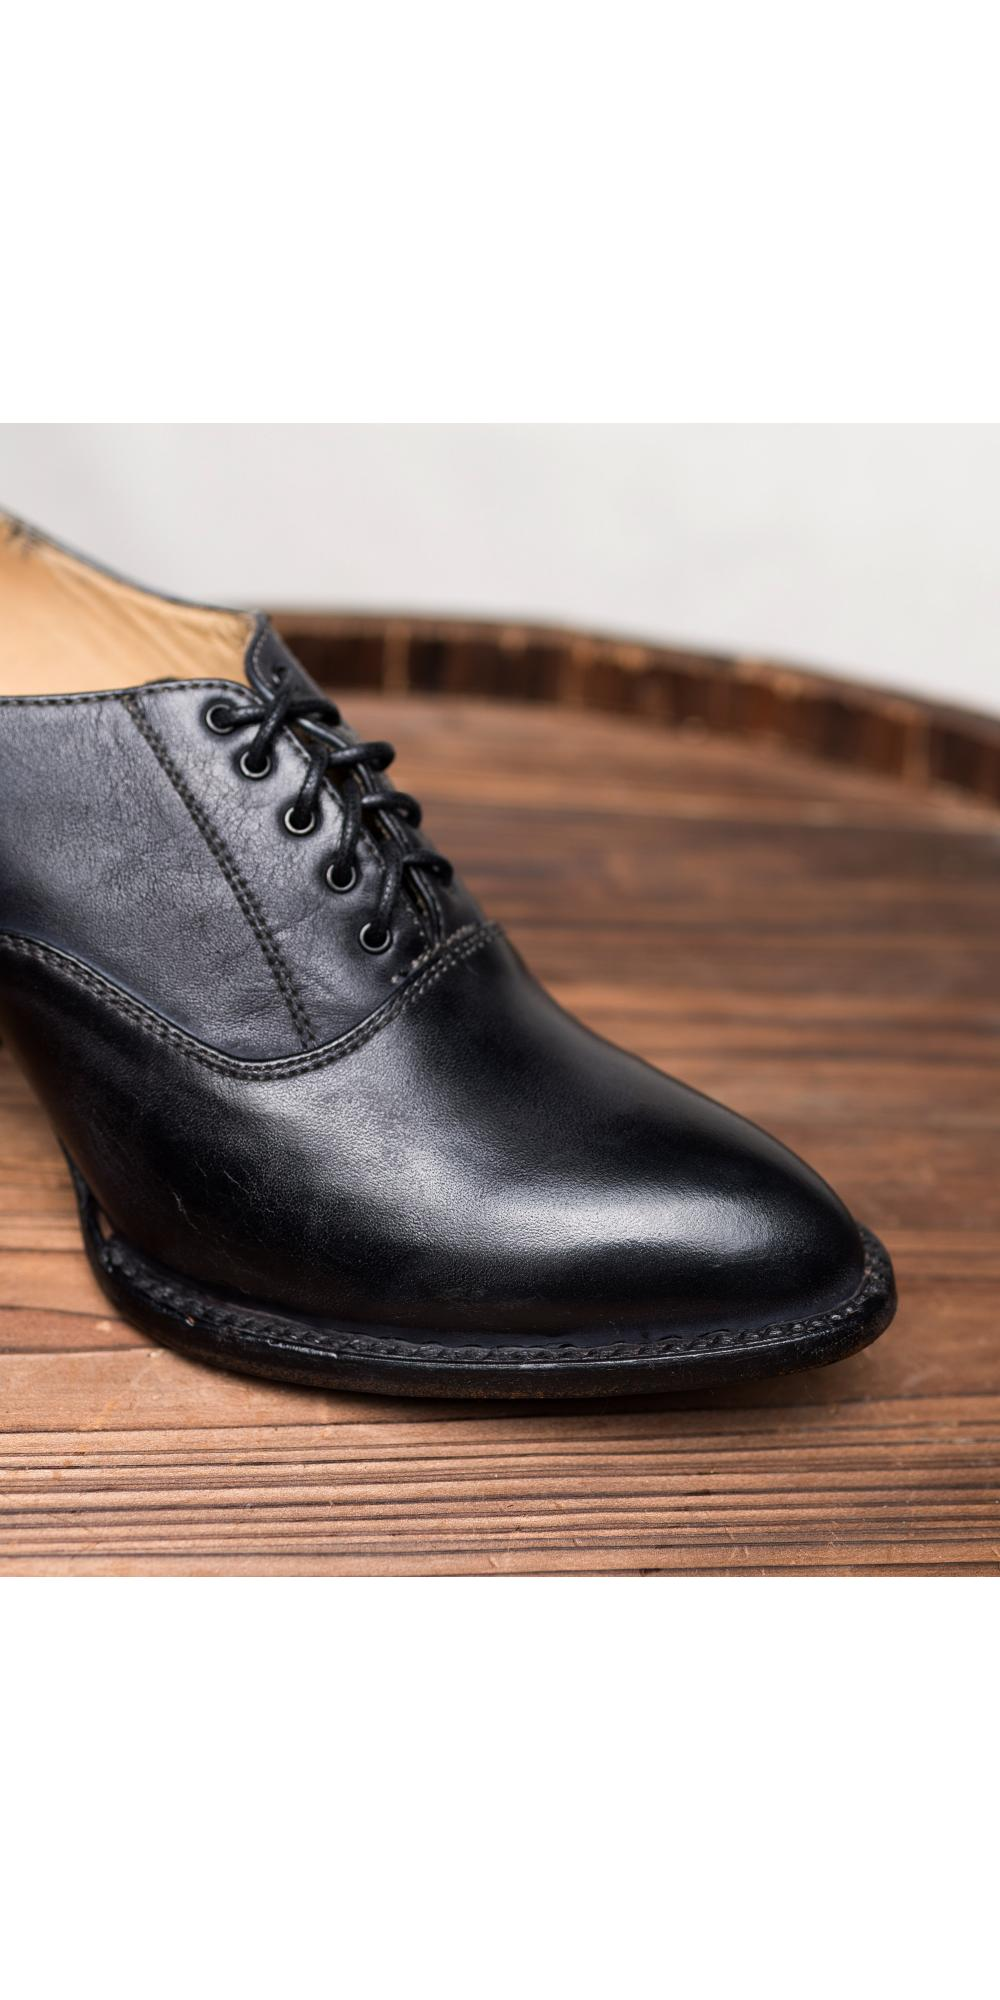 Image Result For All Black Casual Shoes